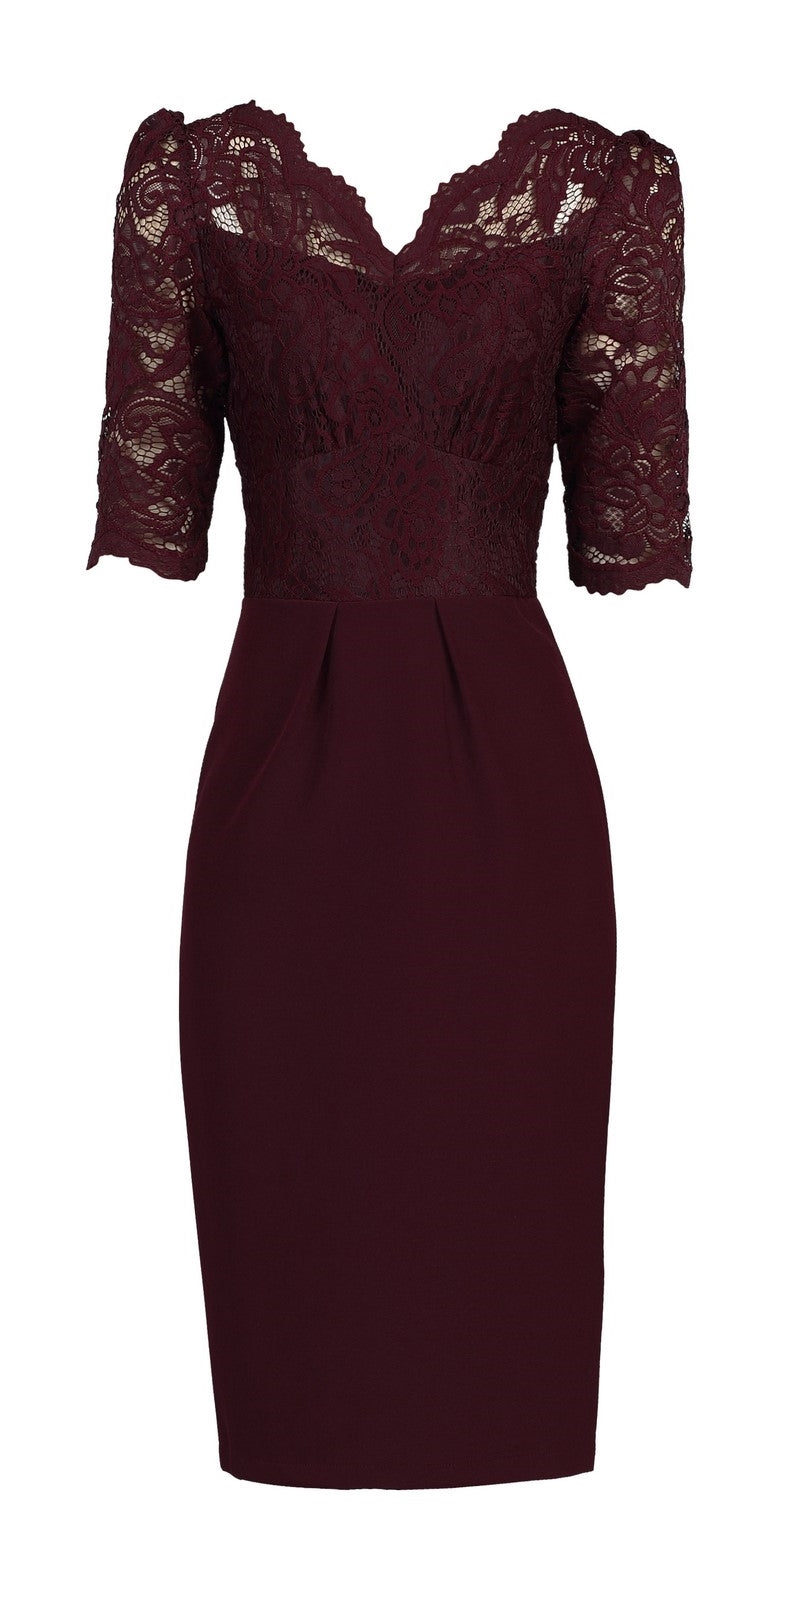 d047798f59c1 Deirdre Lace Sleeve Wiggle Dress - Burgundy